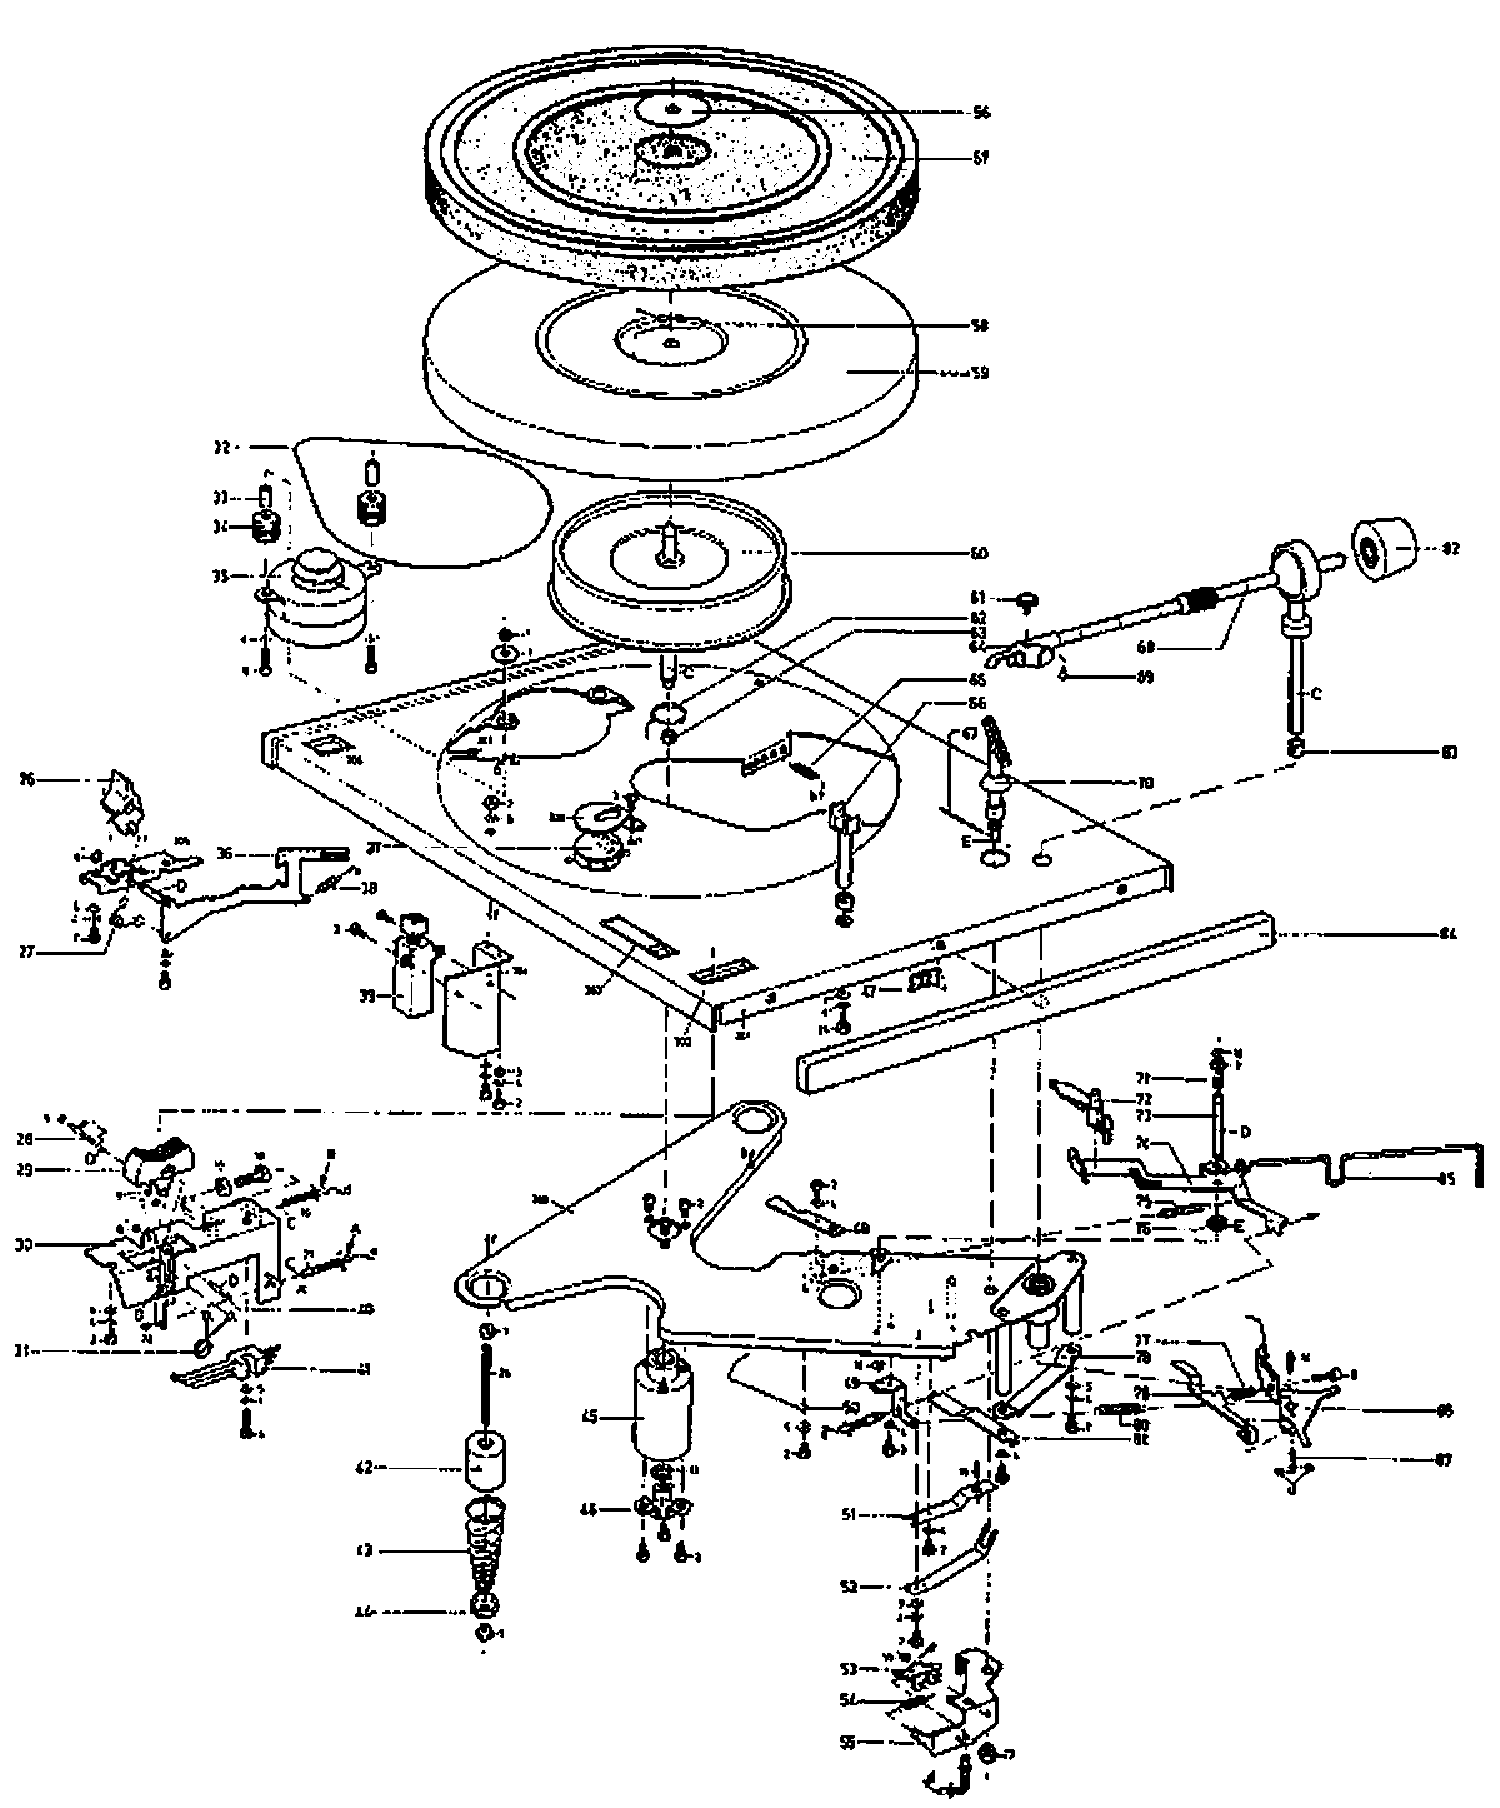 Saab 93 1 9 Tid Wiring Diagram Trusted Diagrams Rav4 Harness 5 23 Images Toyota Jeep Liberty